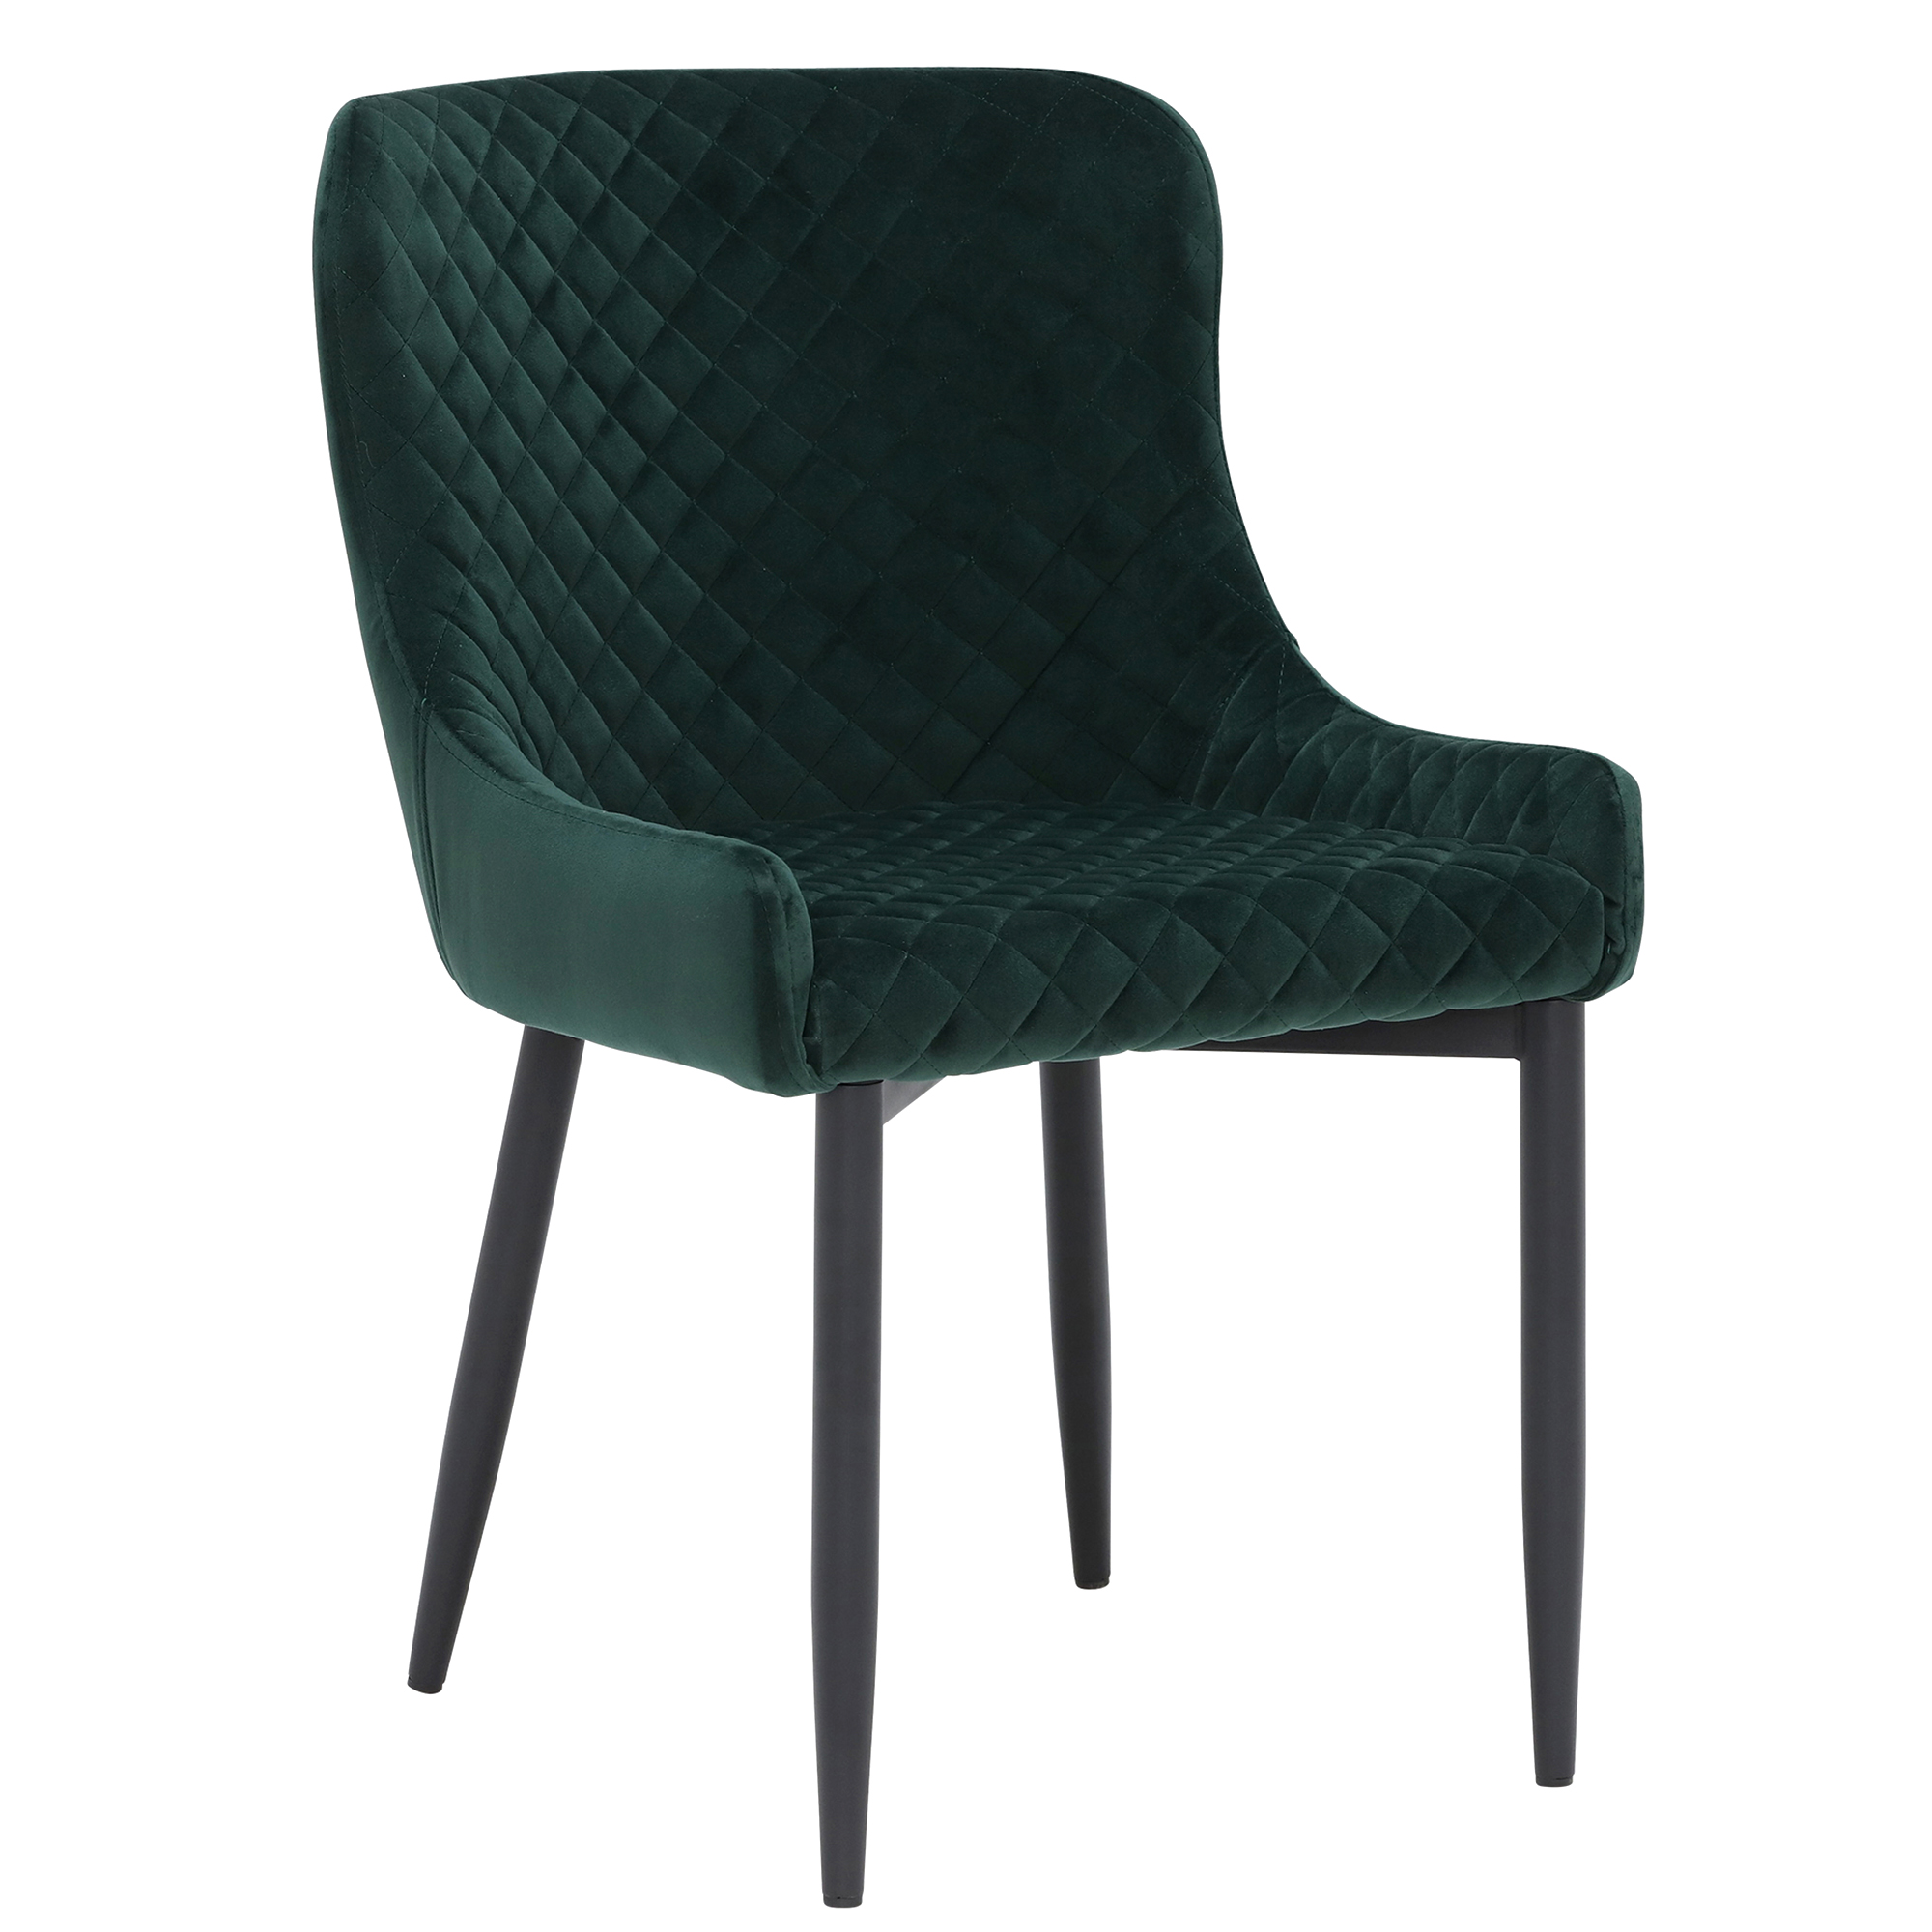 Dark Green FABRIC DINING ARMCHAIR Comfy